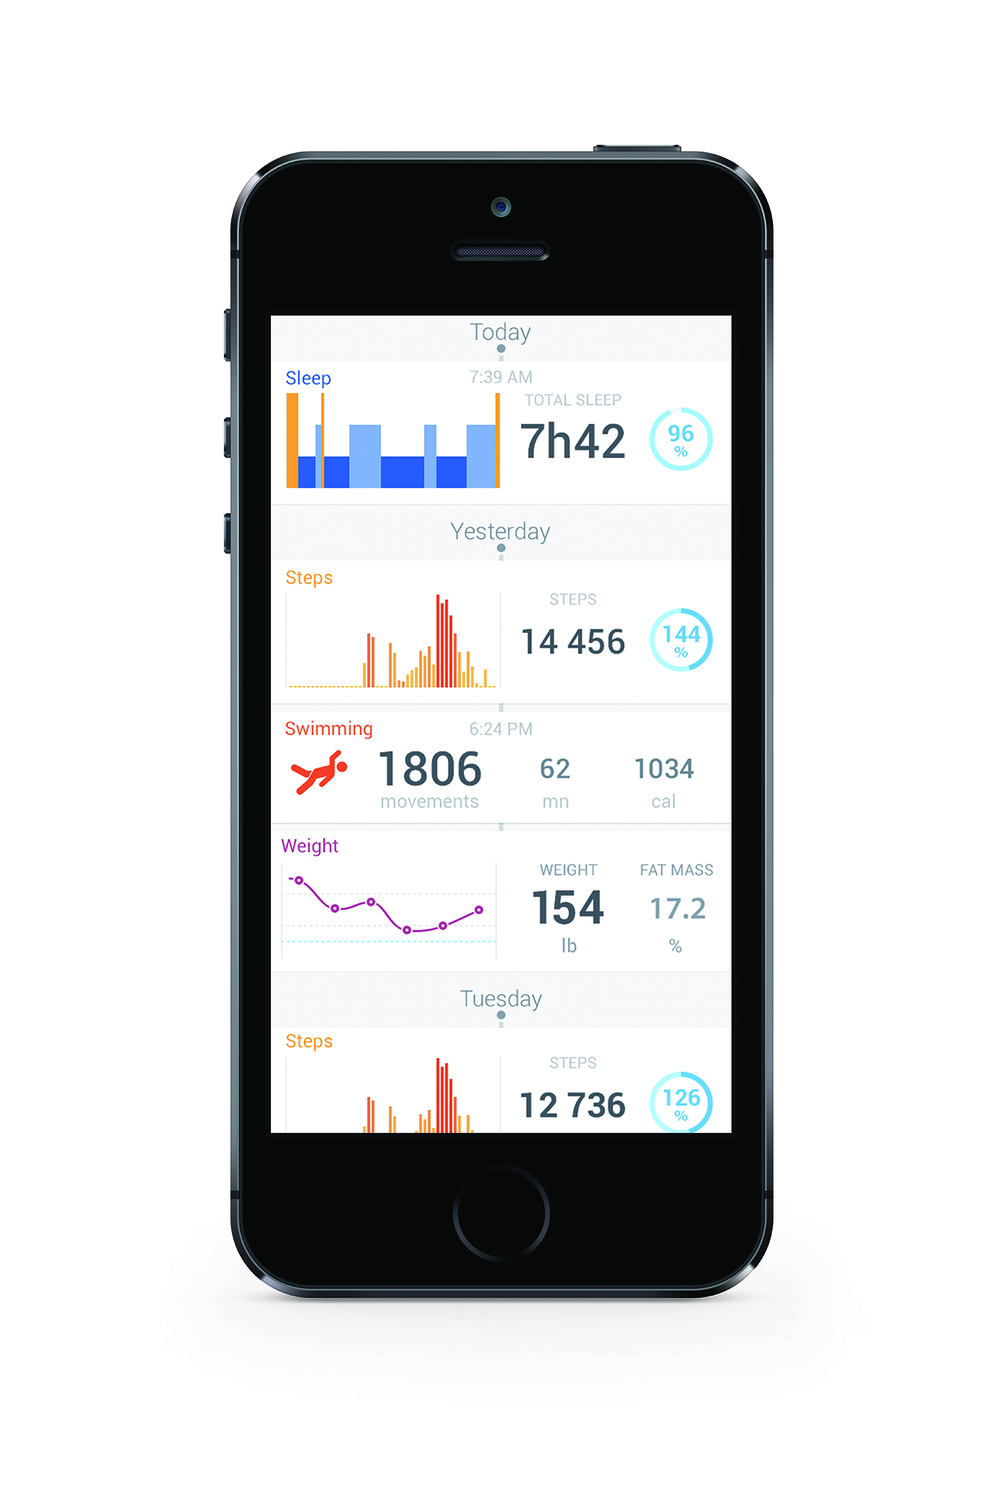 The smart watch synchs to an app called Health Mate, which tracks metabolic metrics.